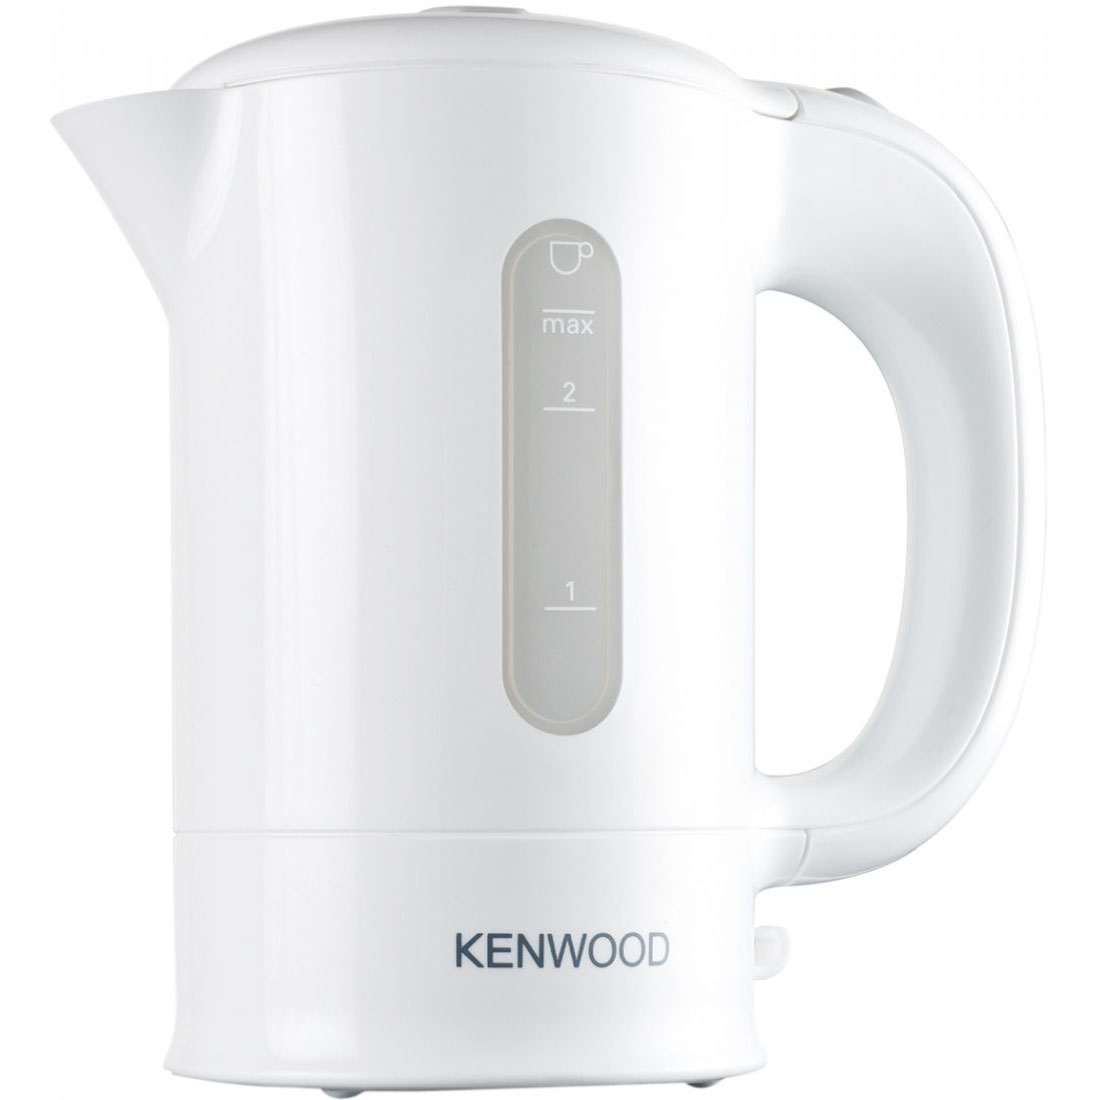 Kenwood JKP250 Kettle - White